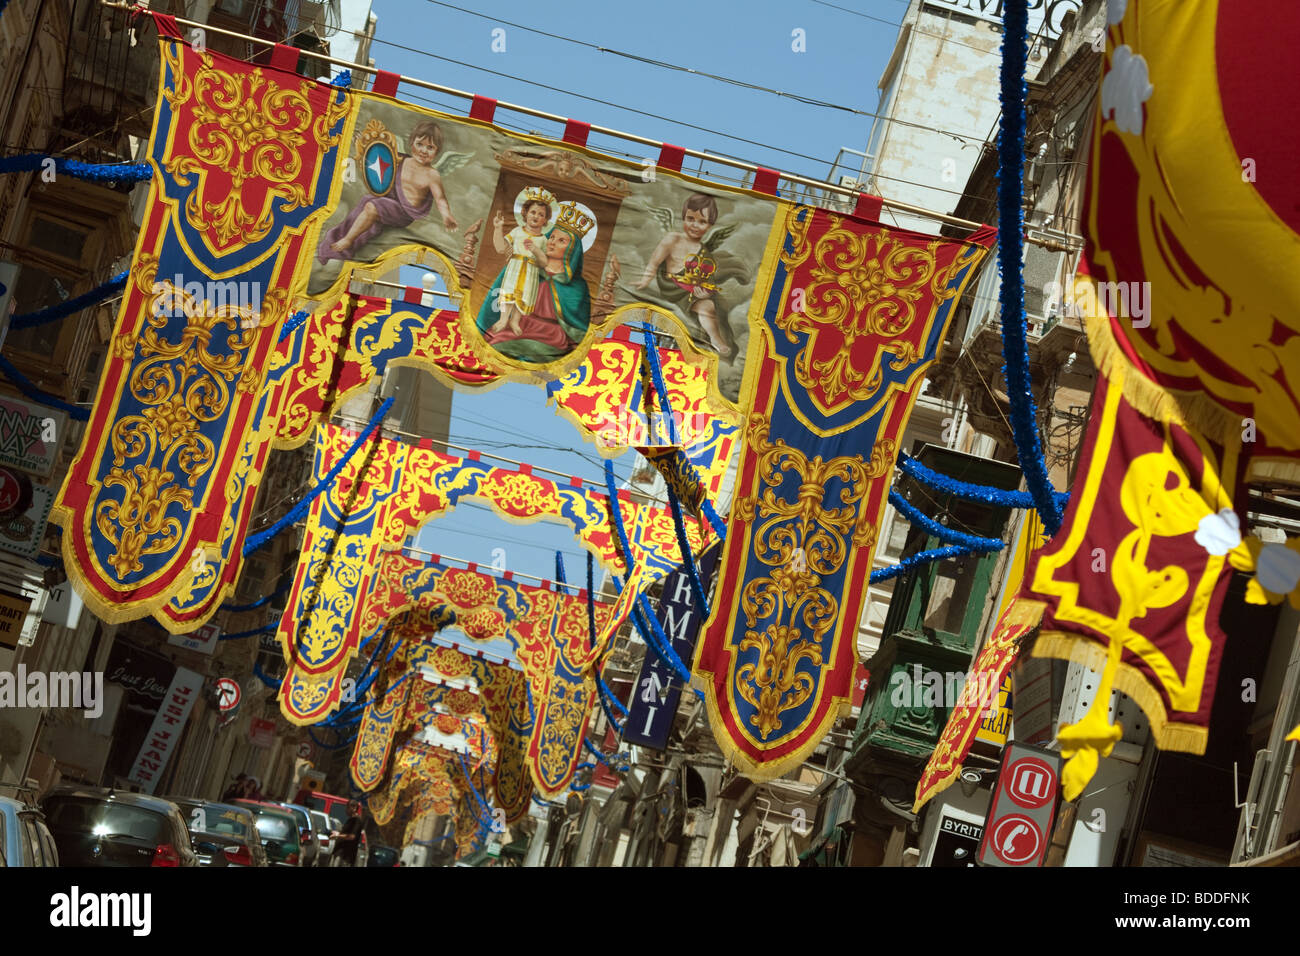 Colourful religious banners in the street, Sliema, Malta - Stock Image